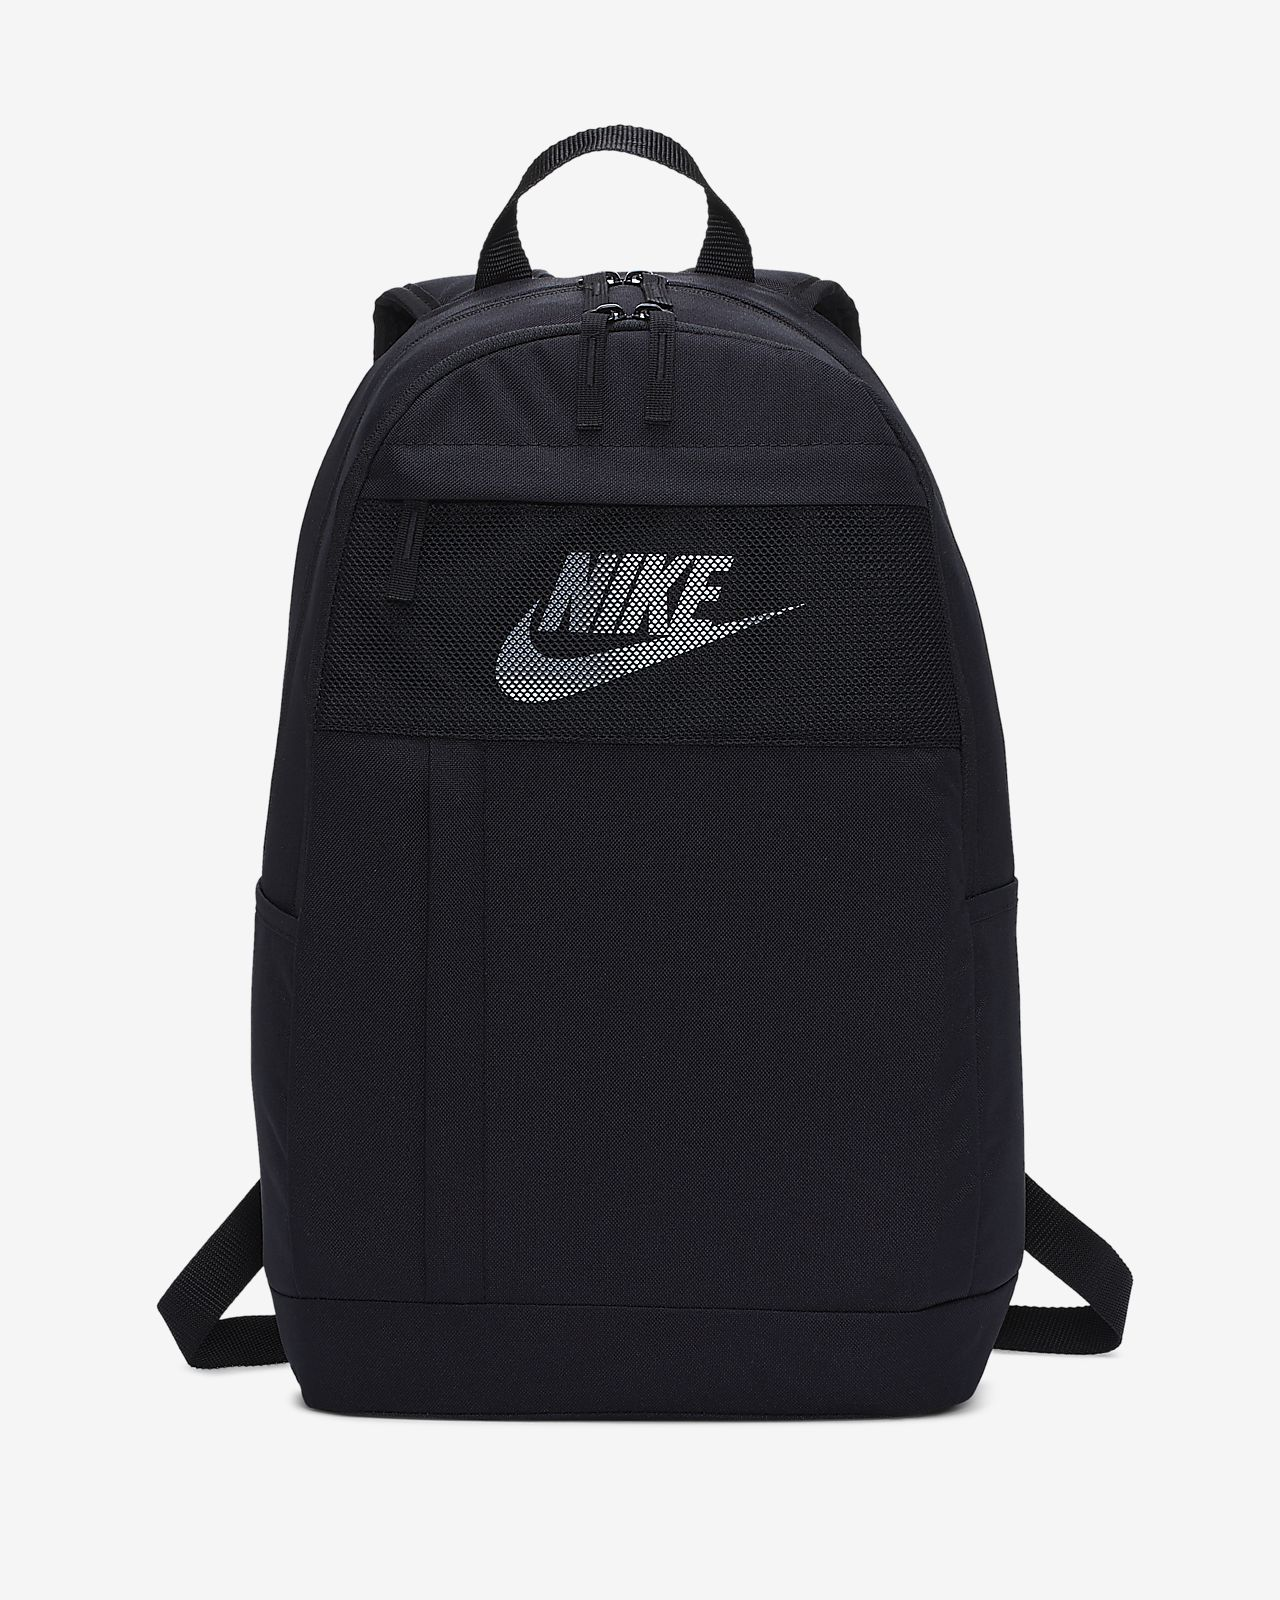 Nike LBR Backpack